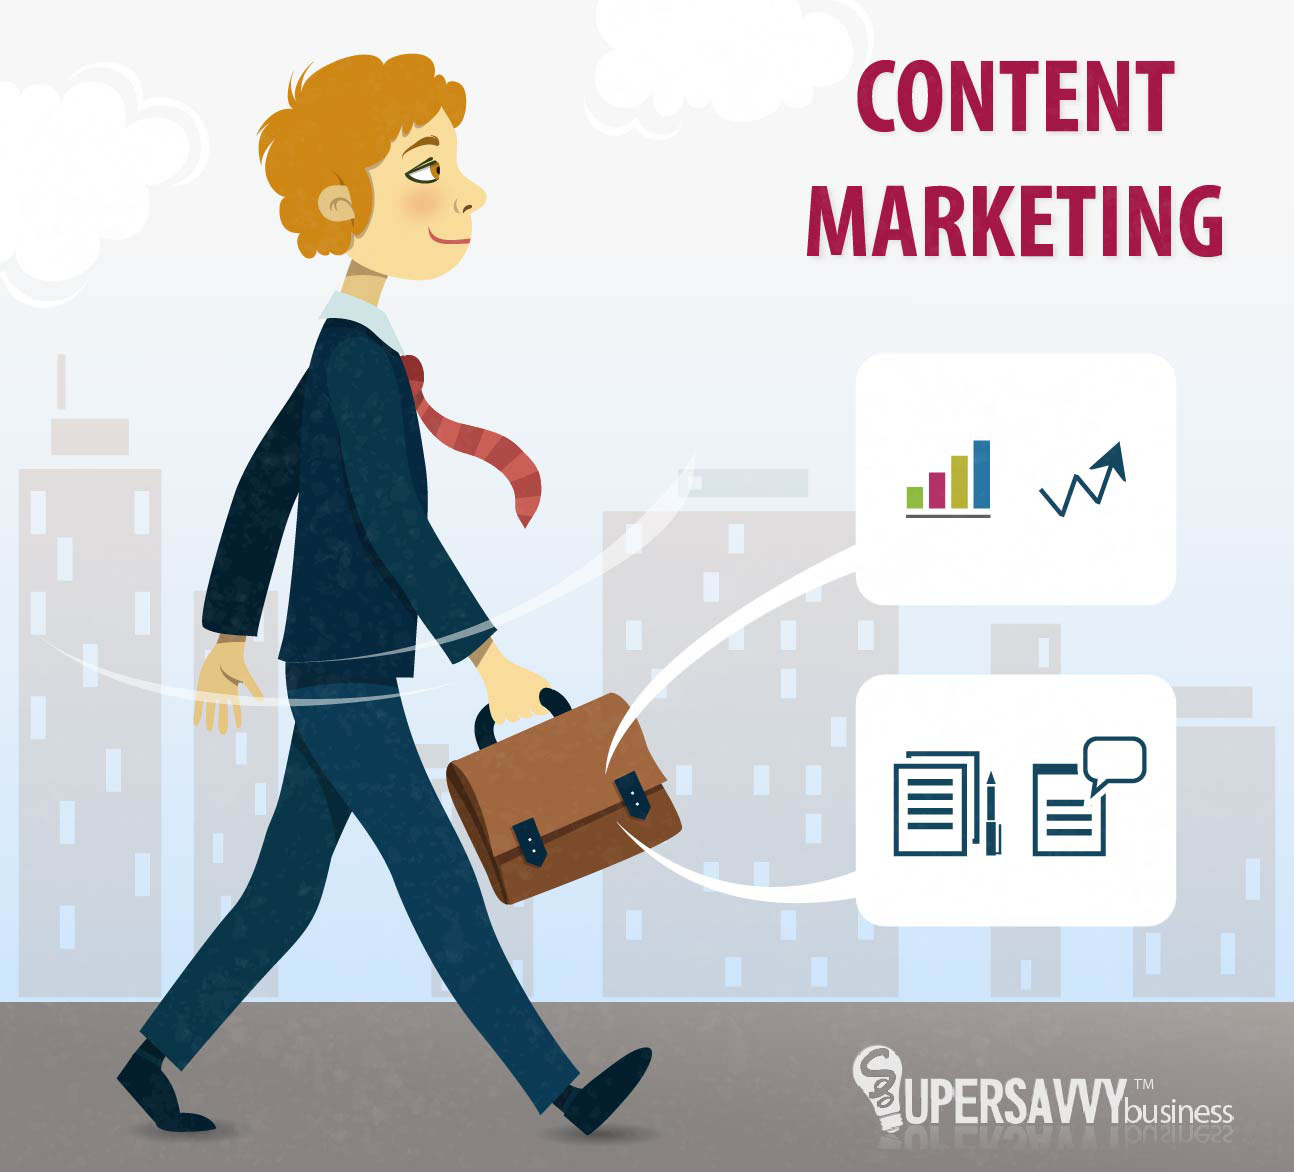 The Complete Content Marketing Blueprint: How To Craft a Personalised Content Marketing Strategy For Your Business From Scratch